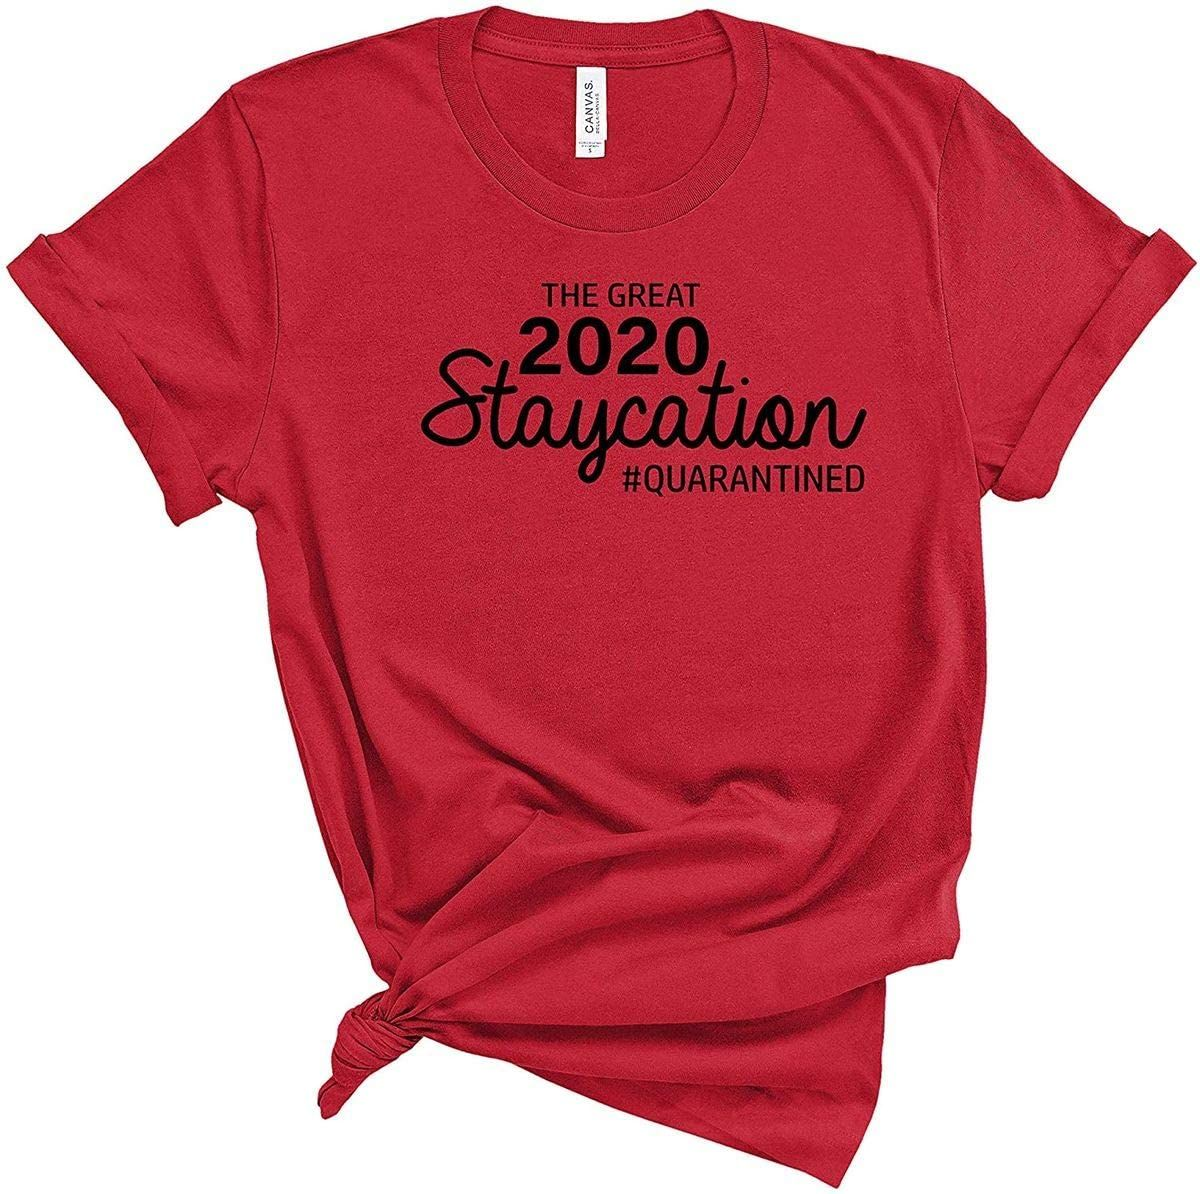 LifeWheel Novelty Shirt The Great 2020 Staycation Social Distance Expert Funny t Shirt Social Distancing Humor Unisex Summer Tee